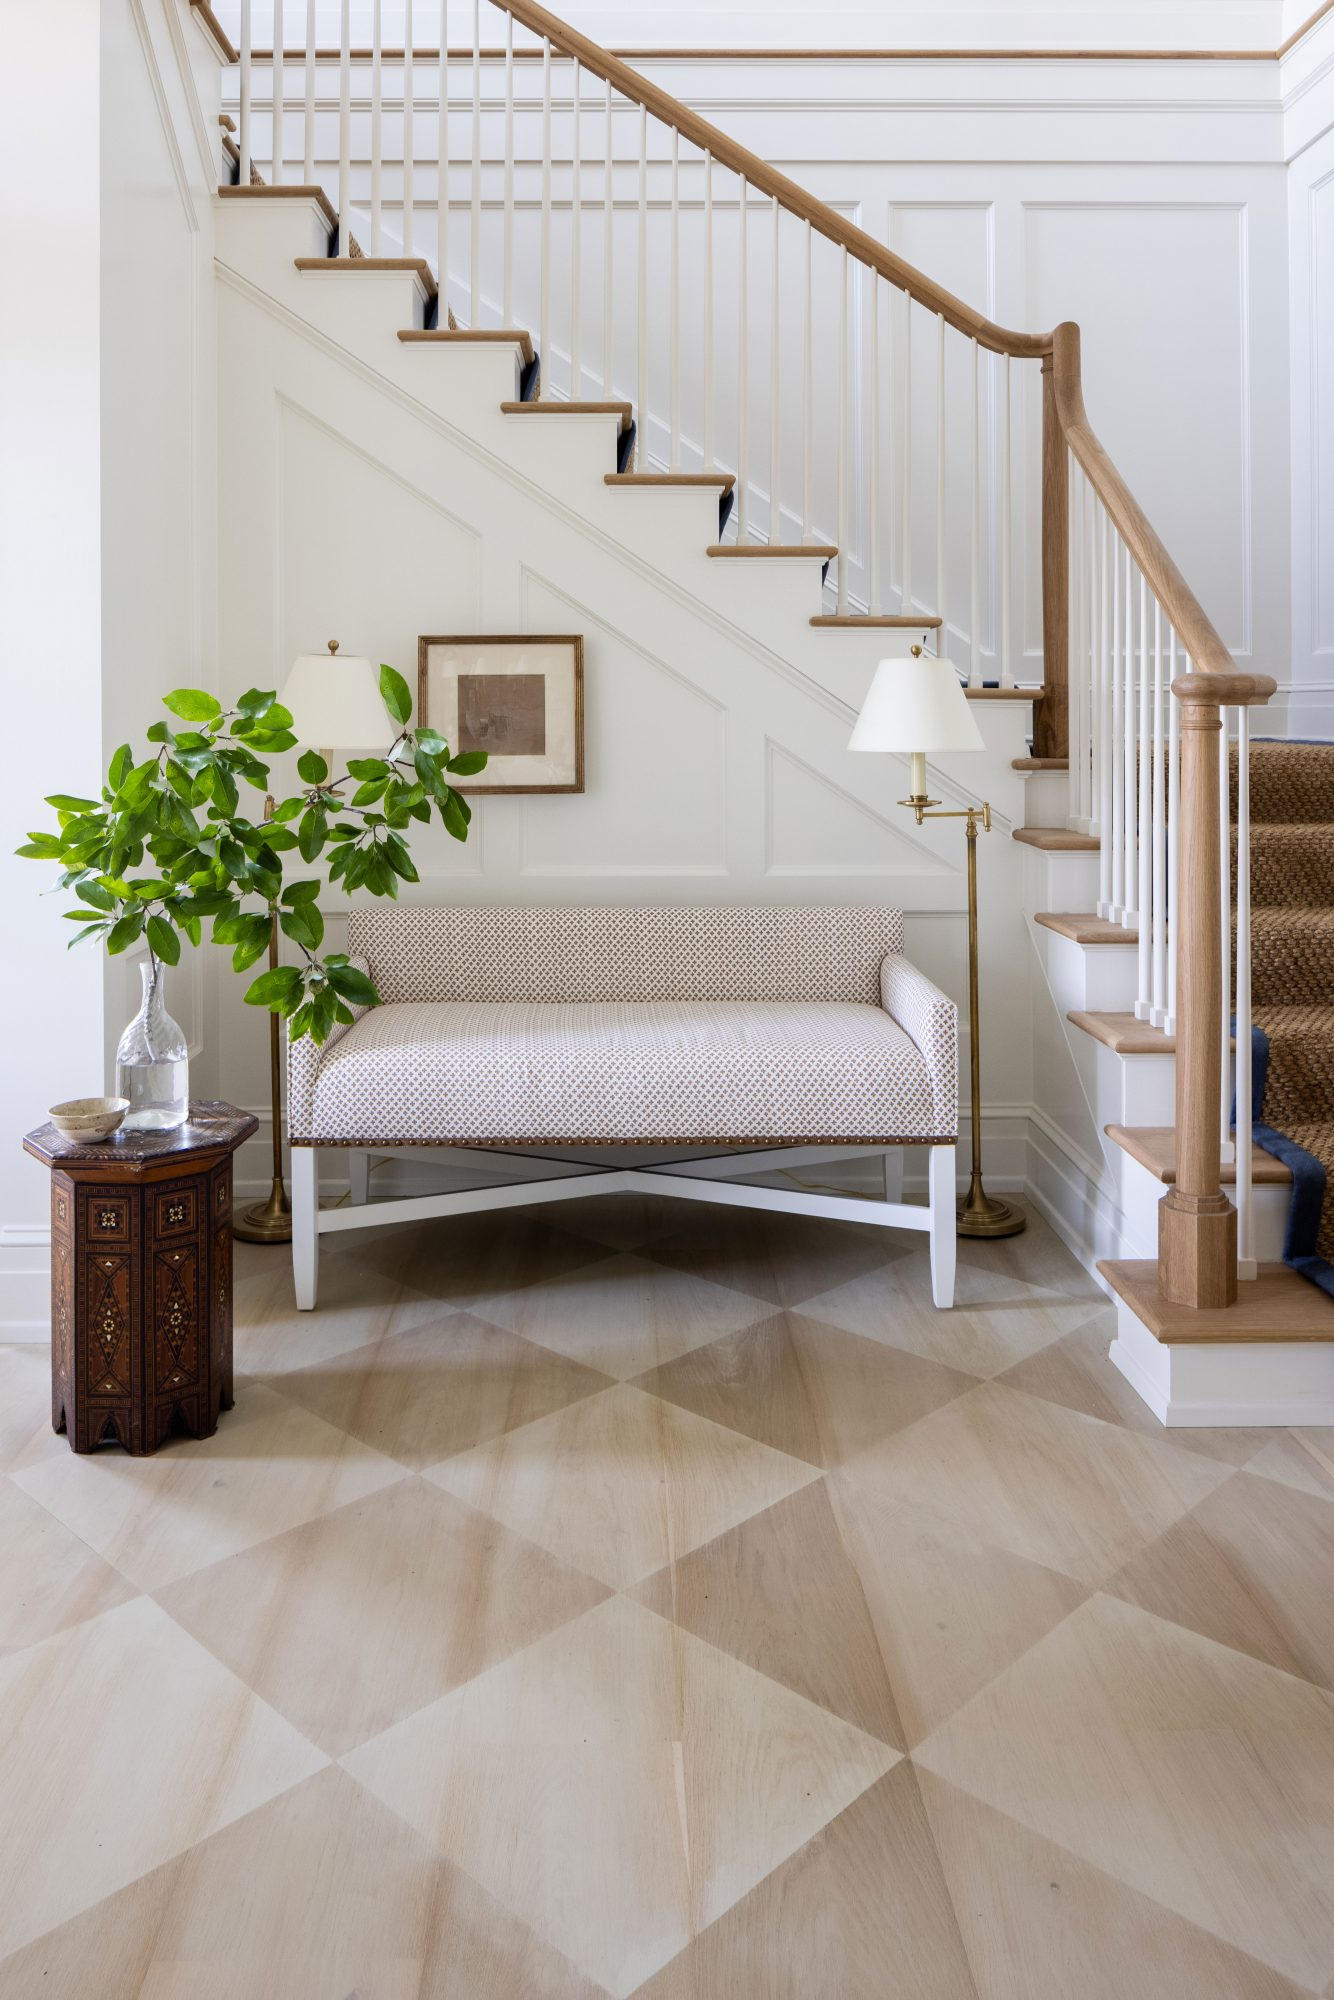 2021 Idea House Entry Stairway with Painted Floors